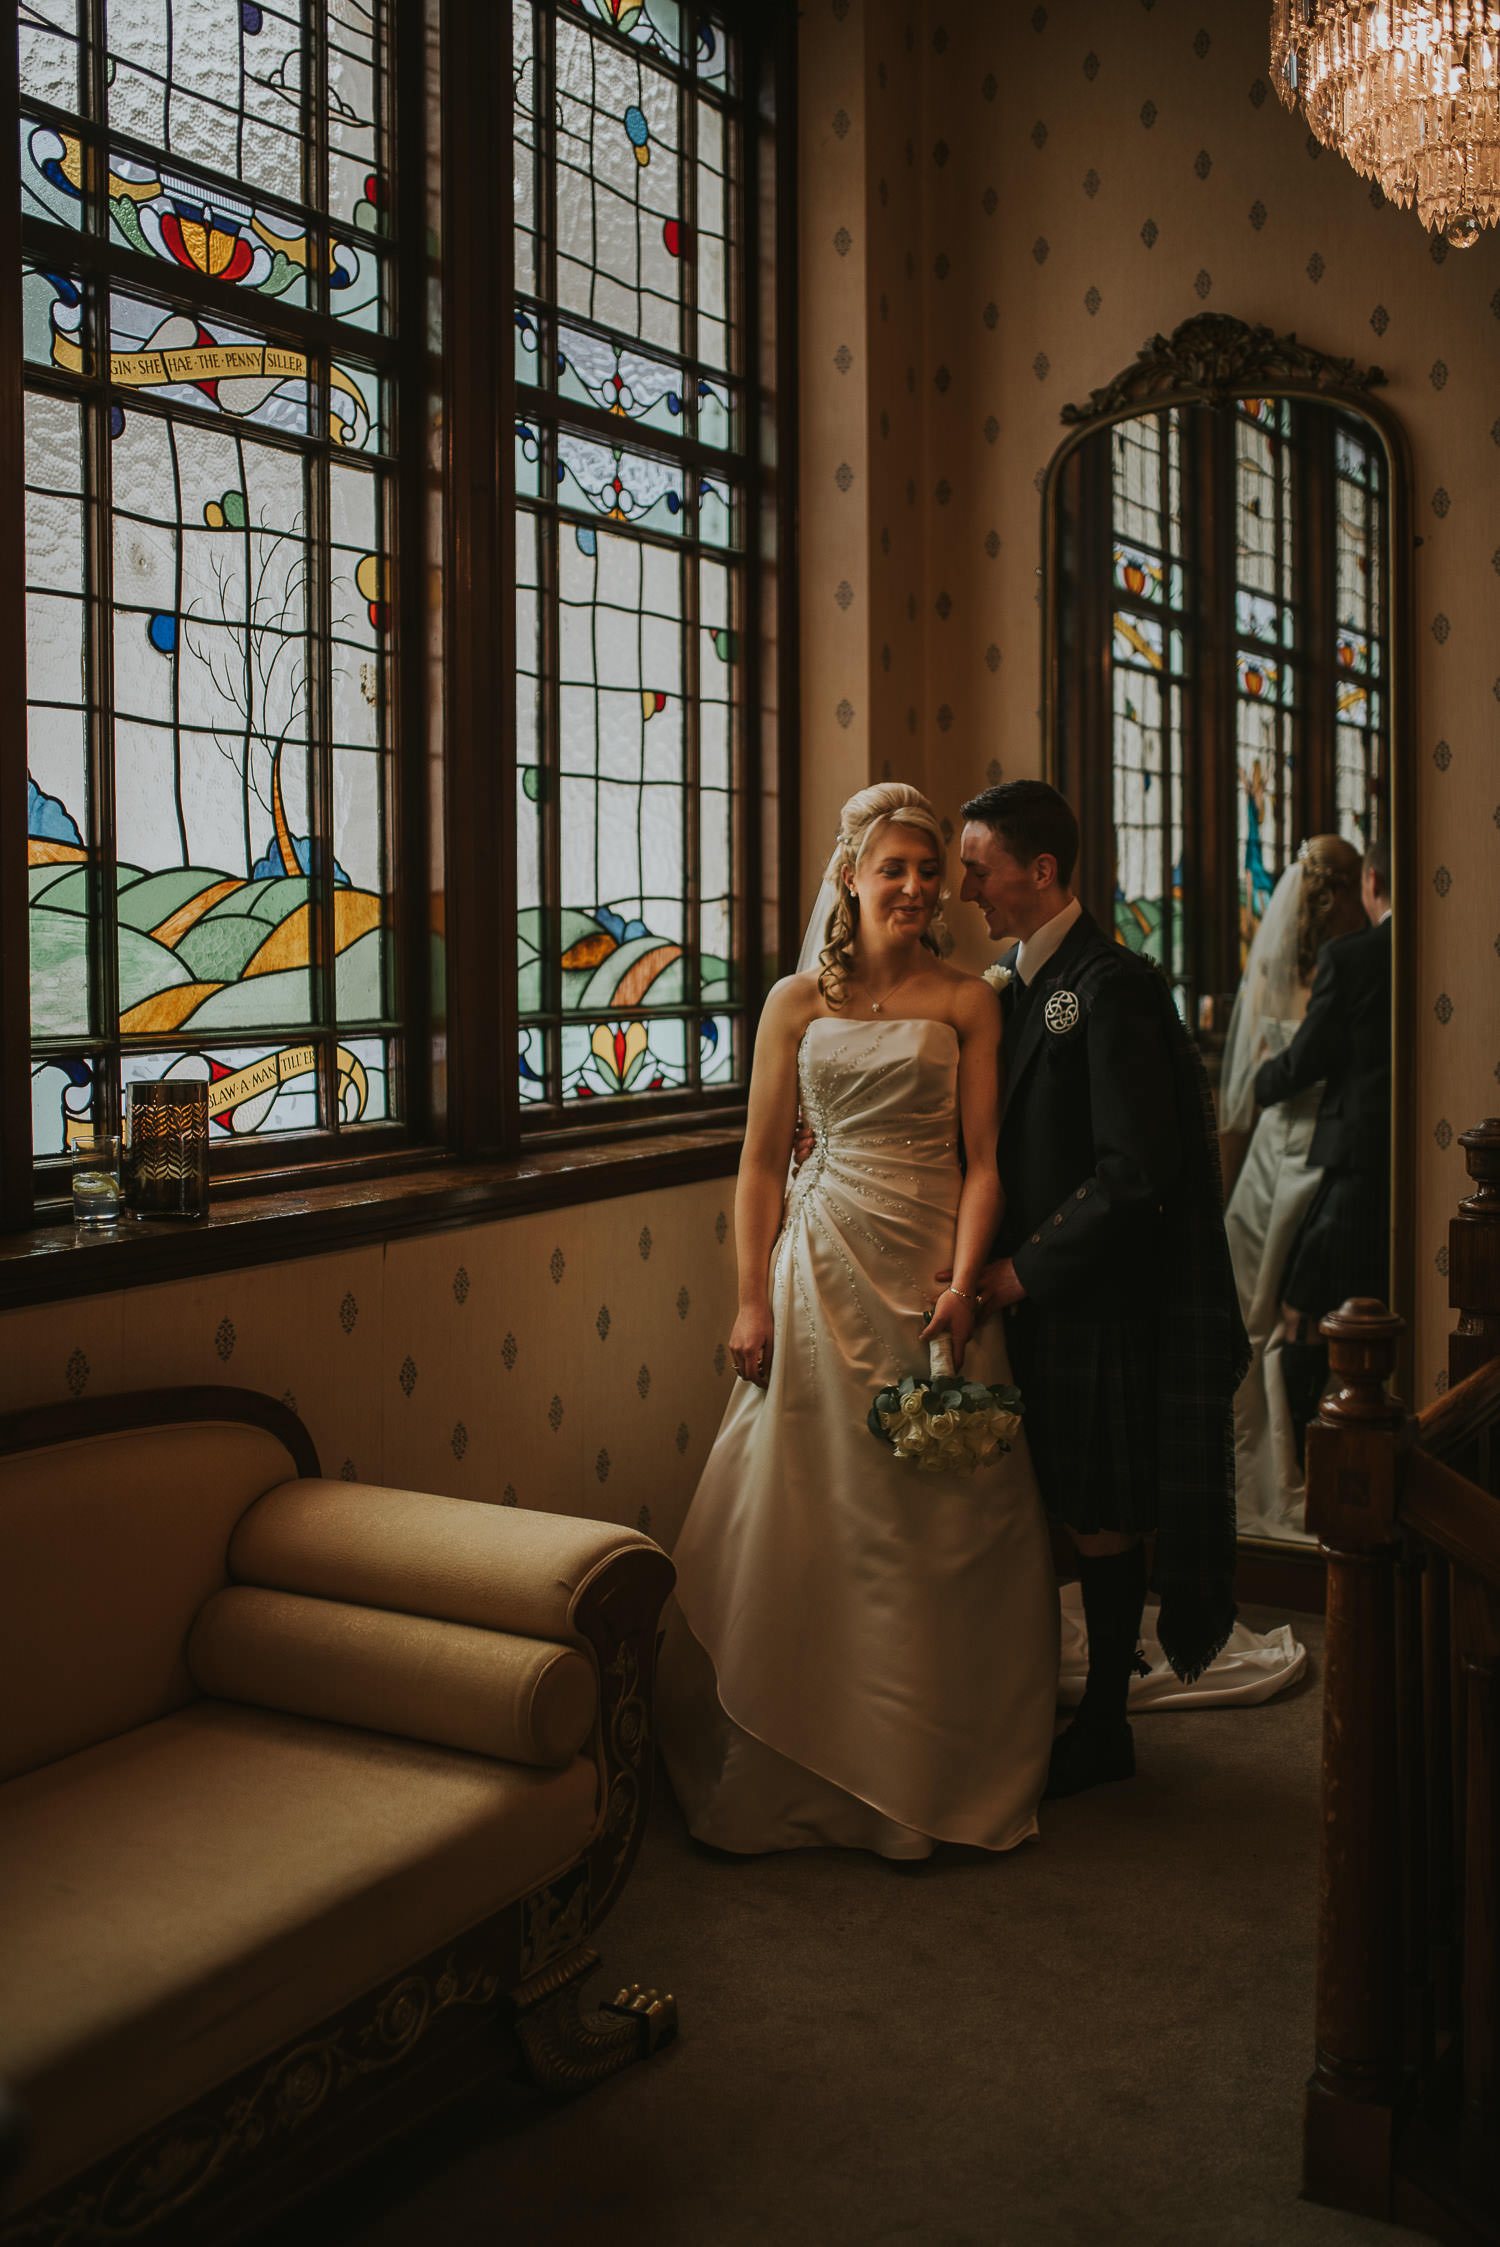 country wedding couple at stain glass window